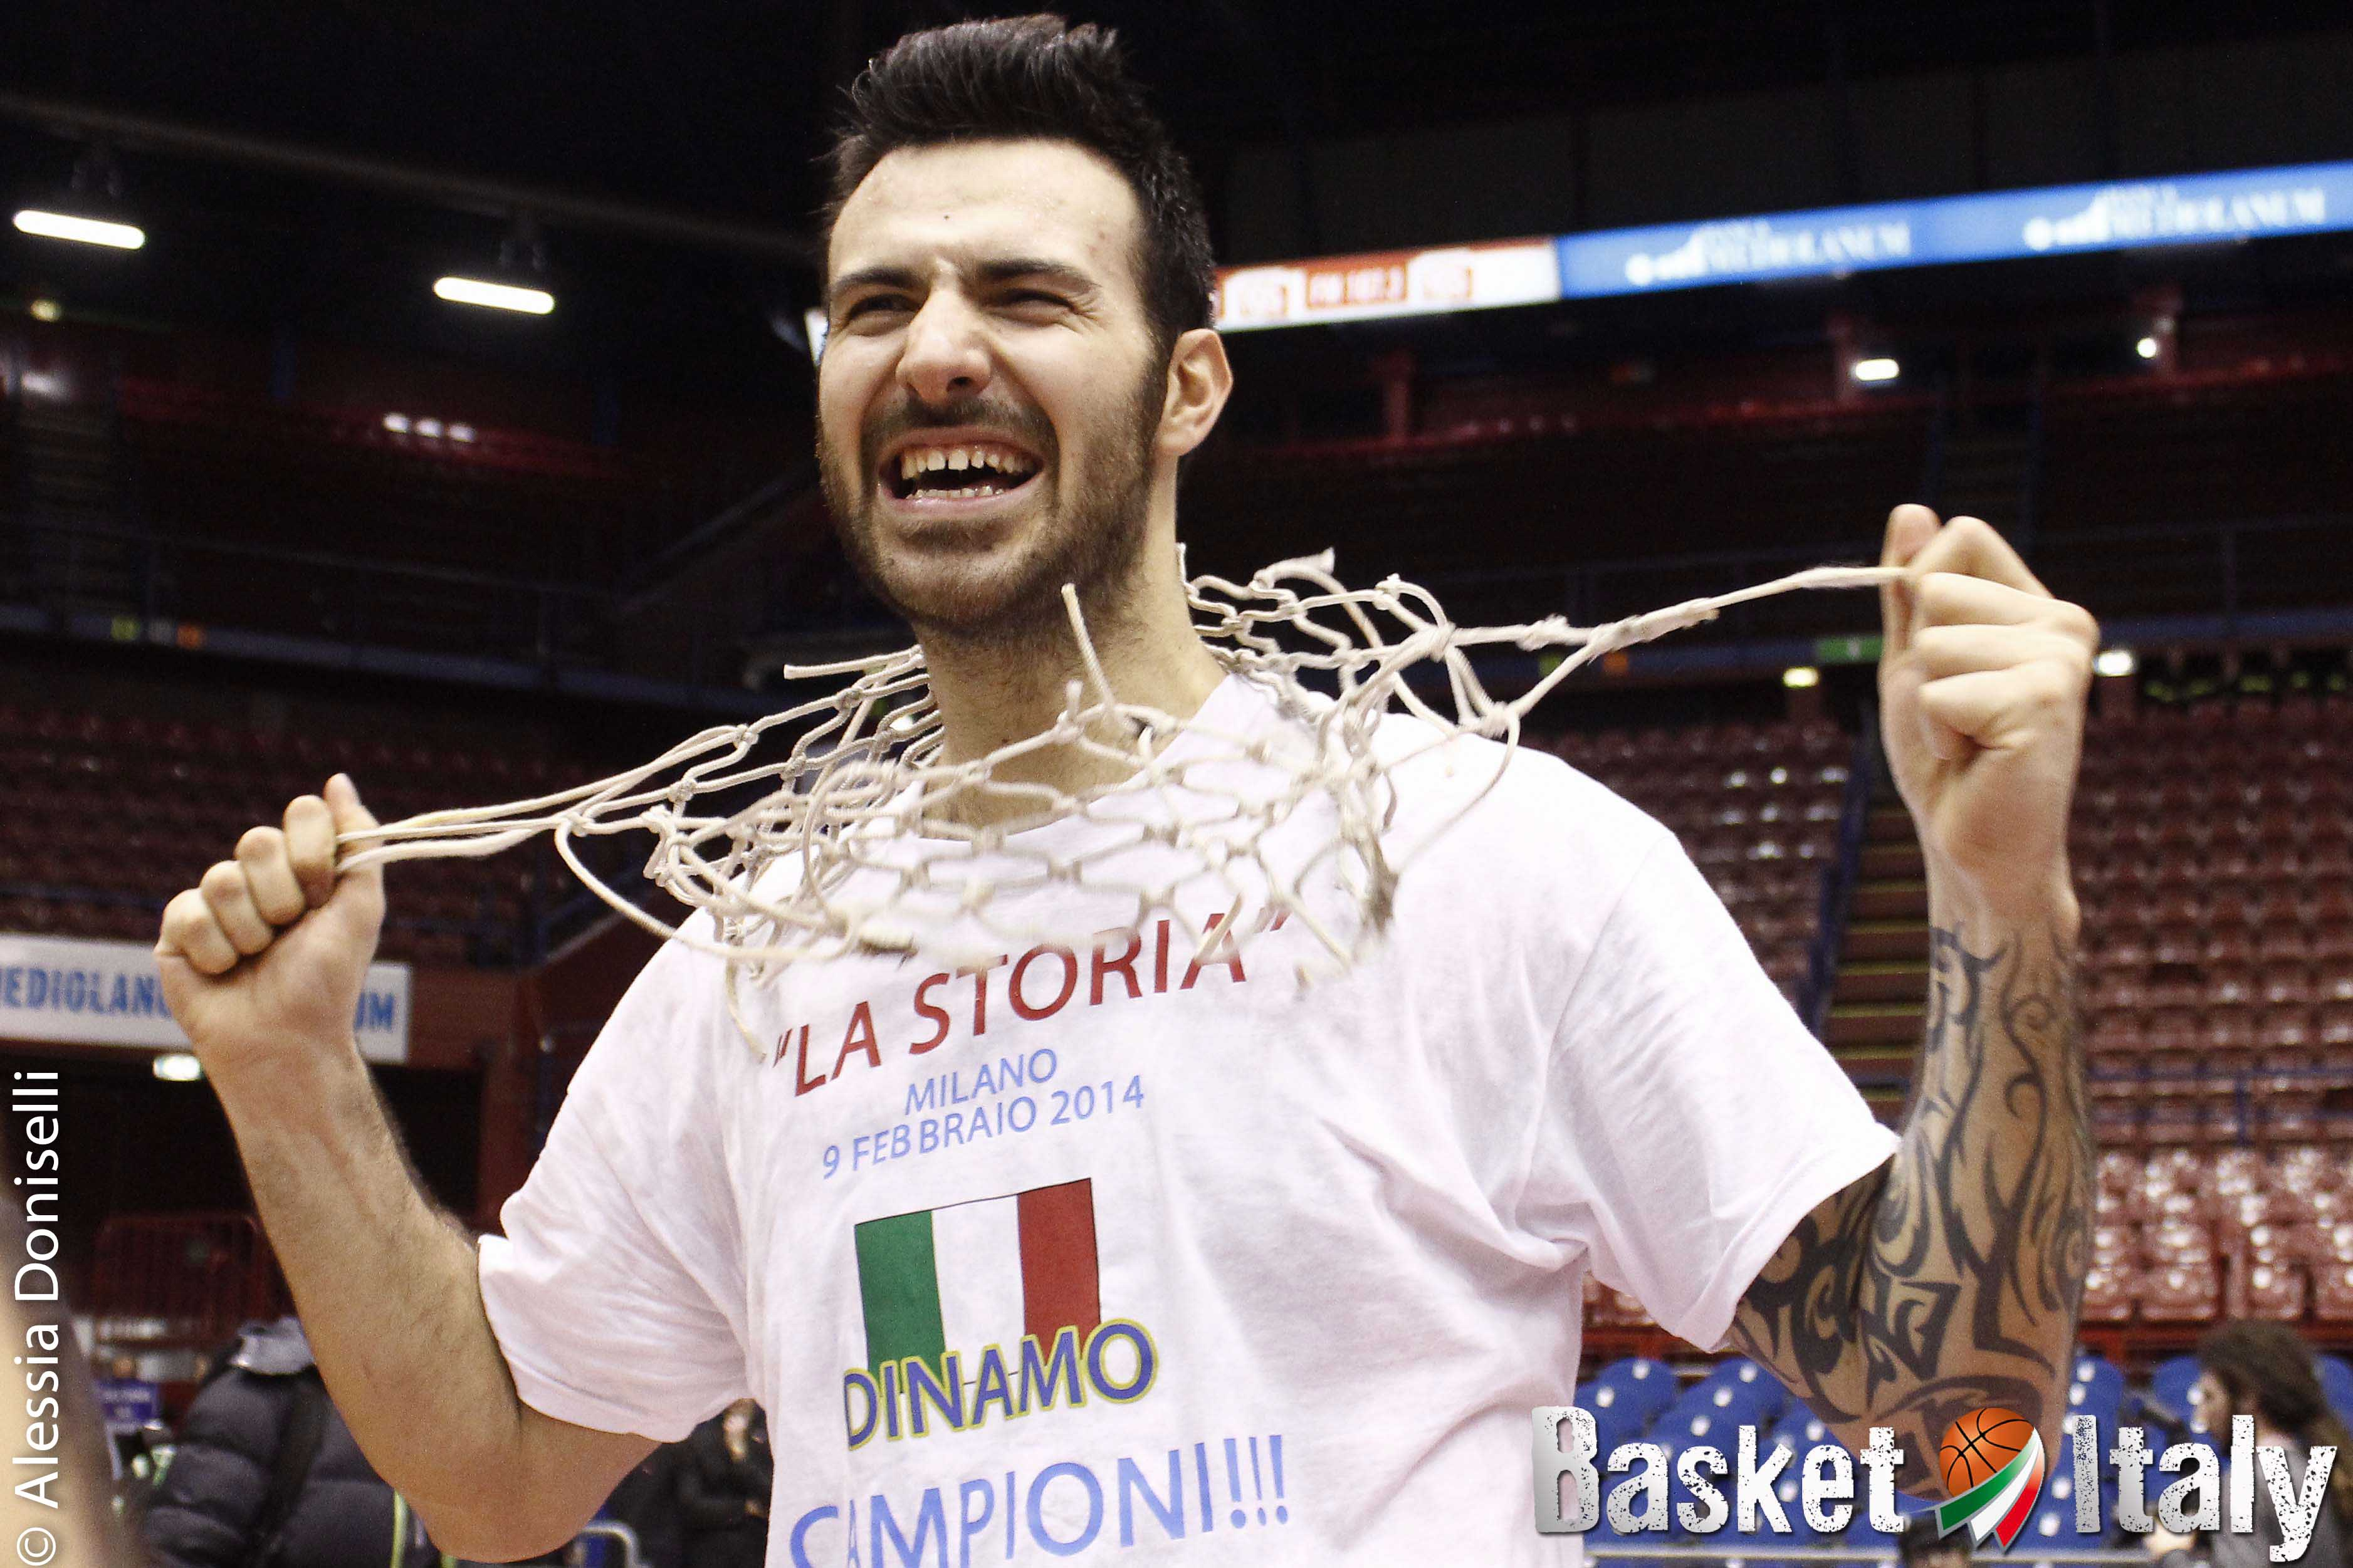 [Video] Esclusiva: BasketItaly.it incontra Brian Sacchetti